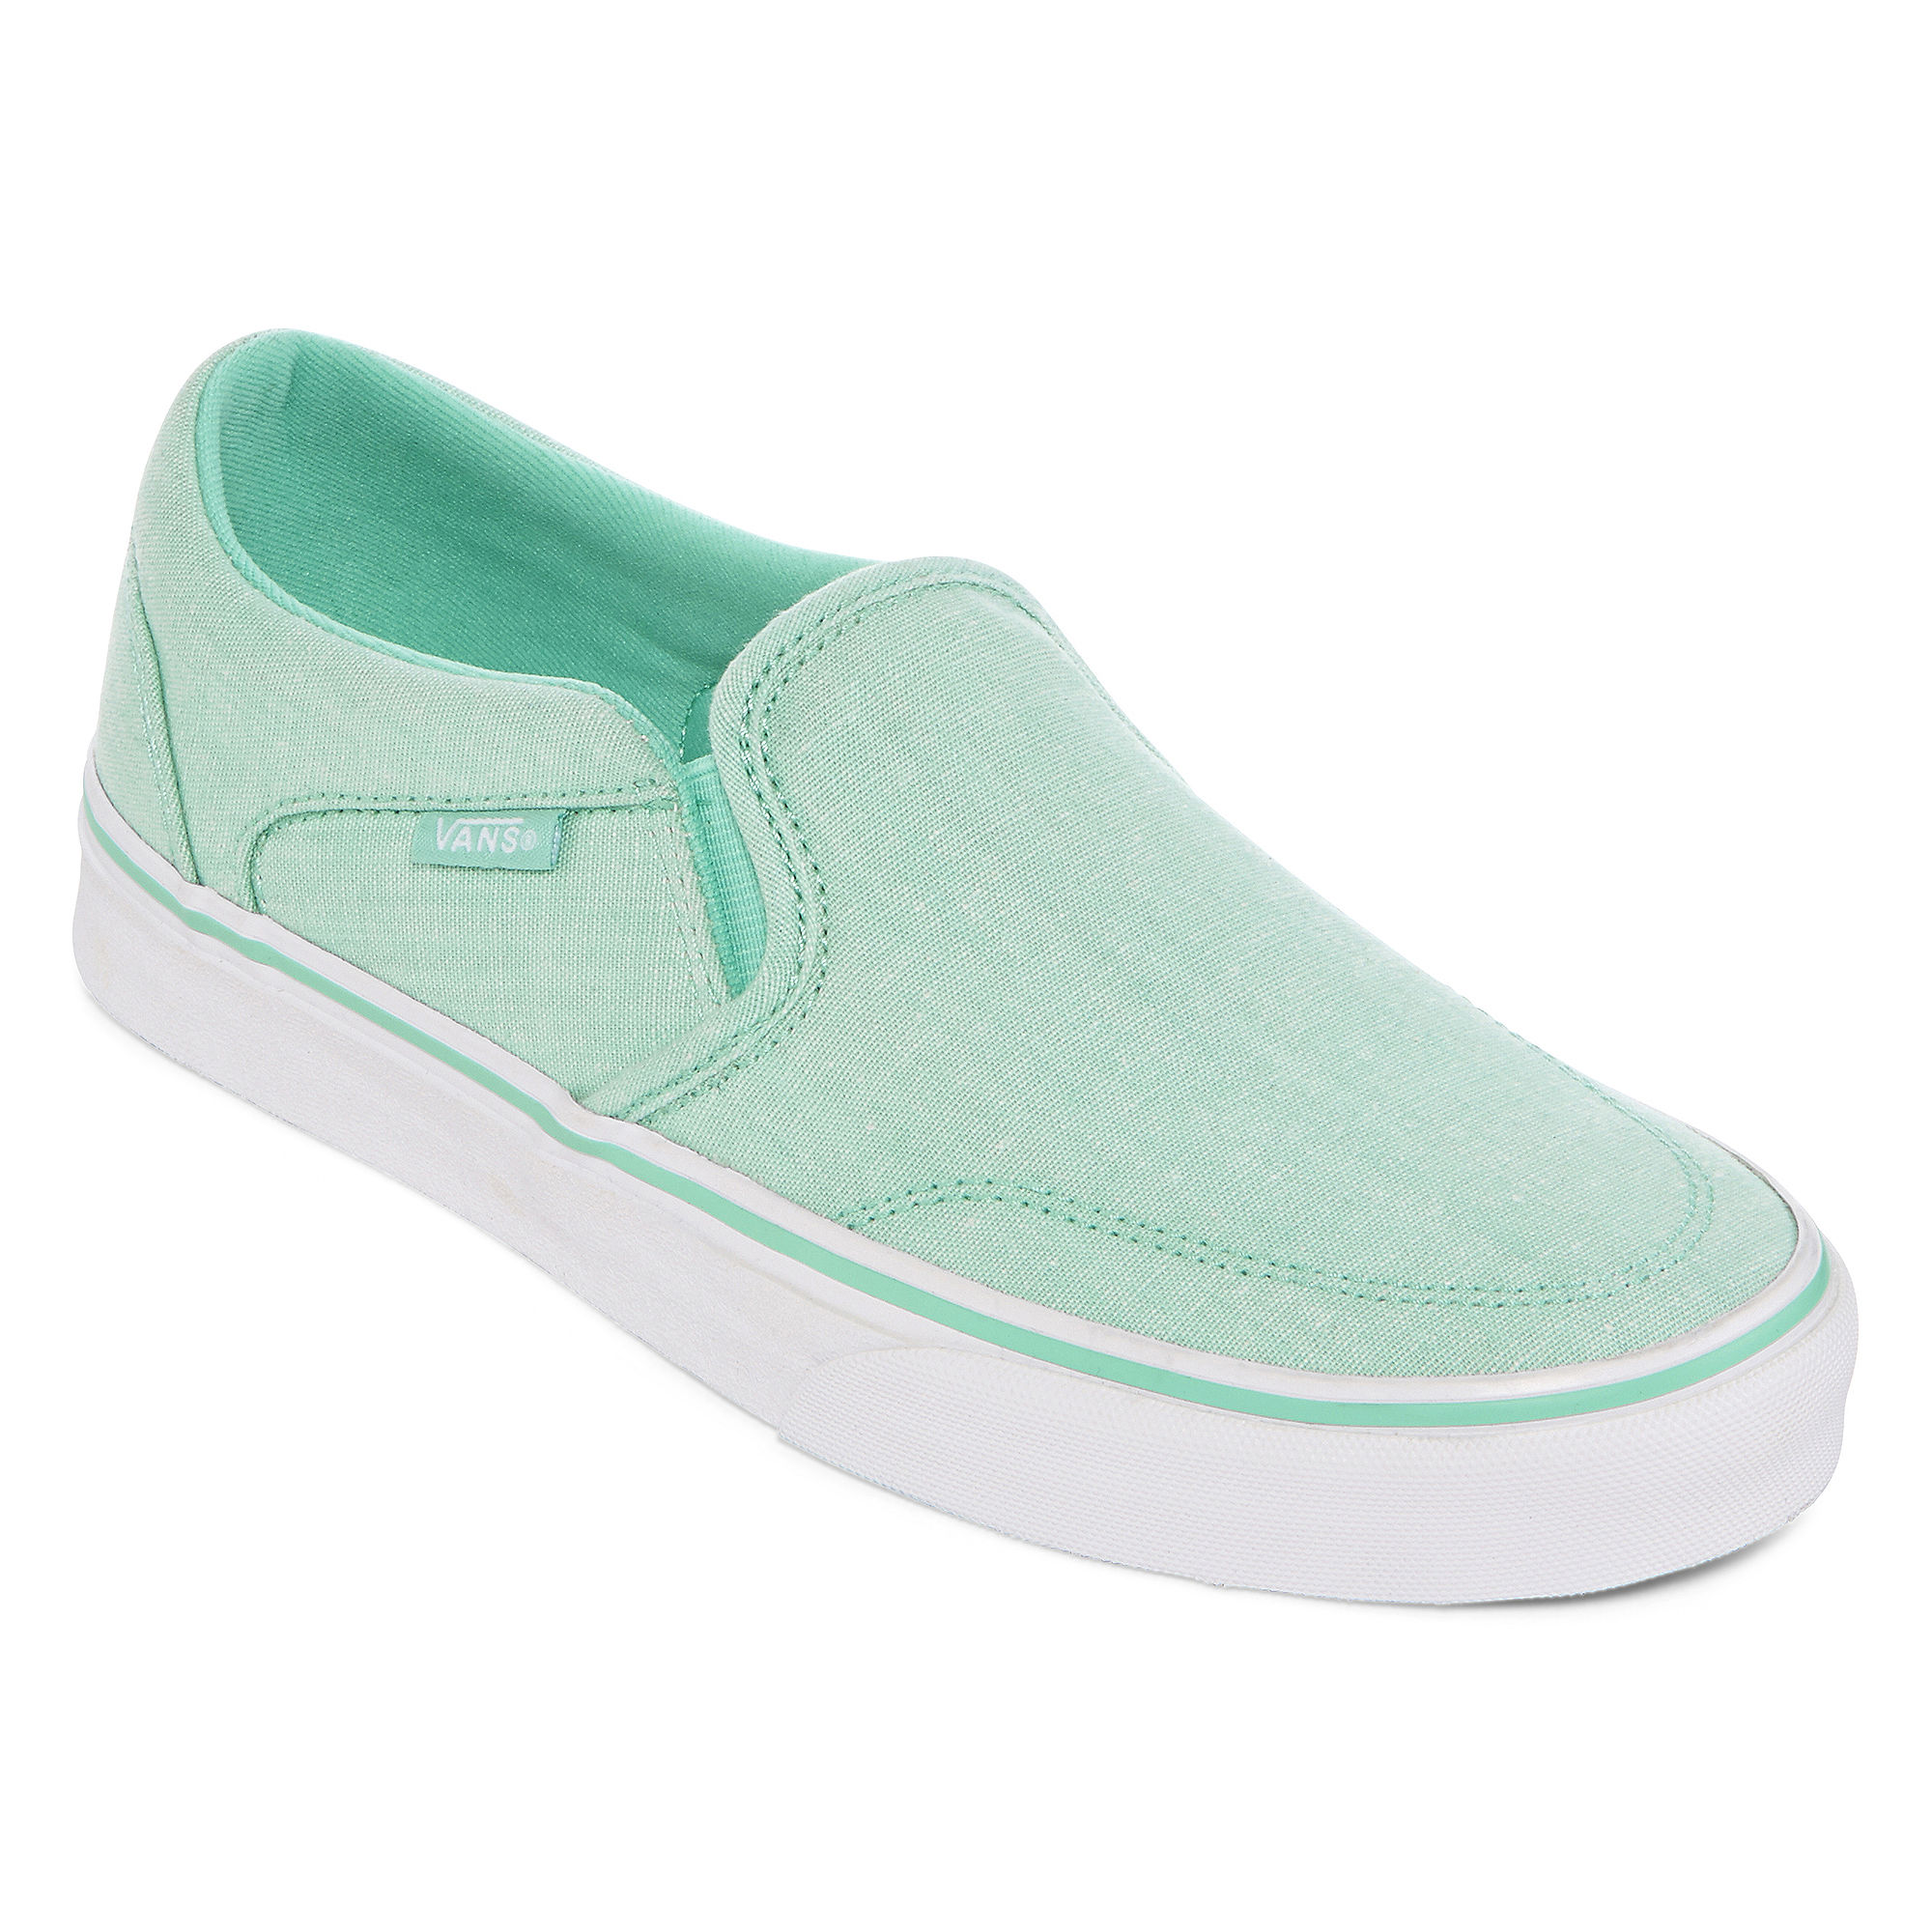 UPC 888655042749. ZOOM. UPC 888655042749 has following Product Name  Variations  Vans Asher Women Us 7.5 Green Sneakers ... 1e290c2e2